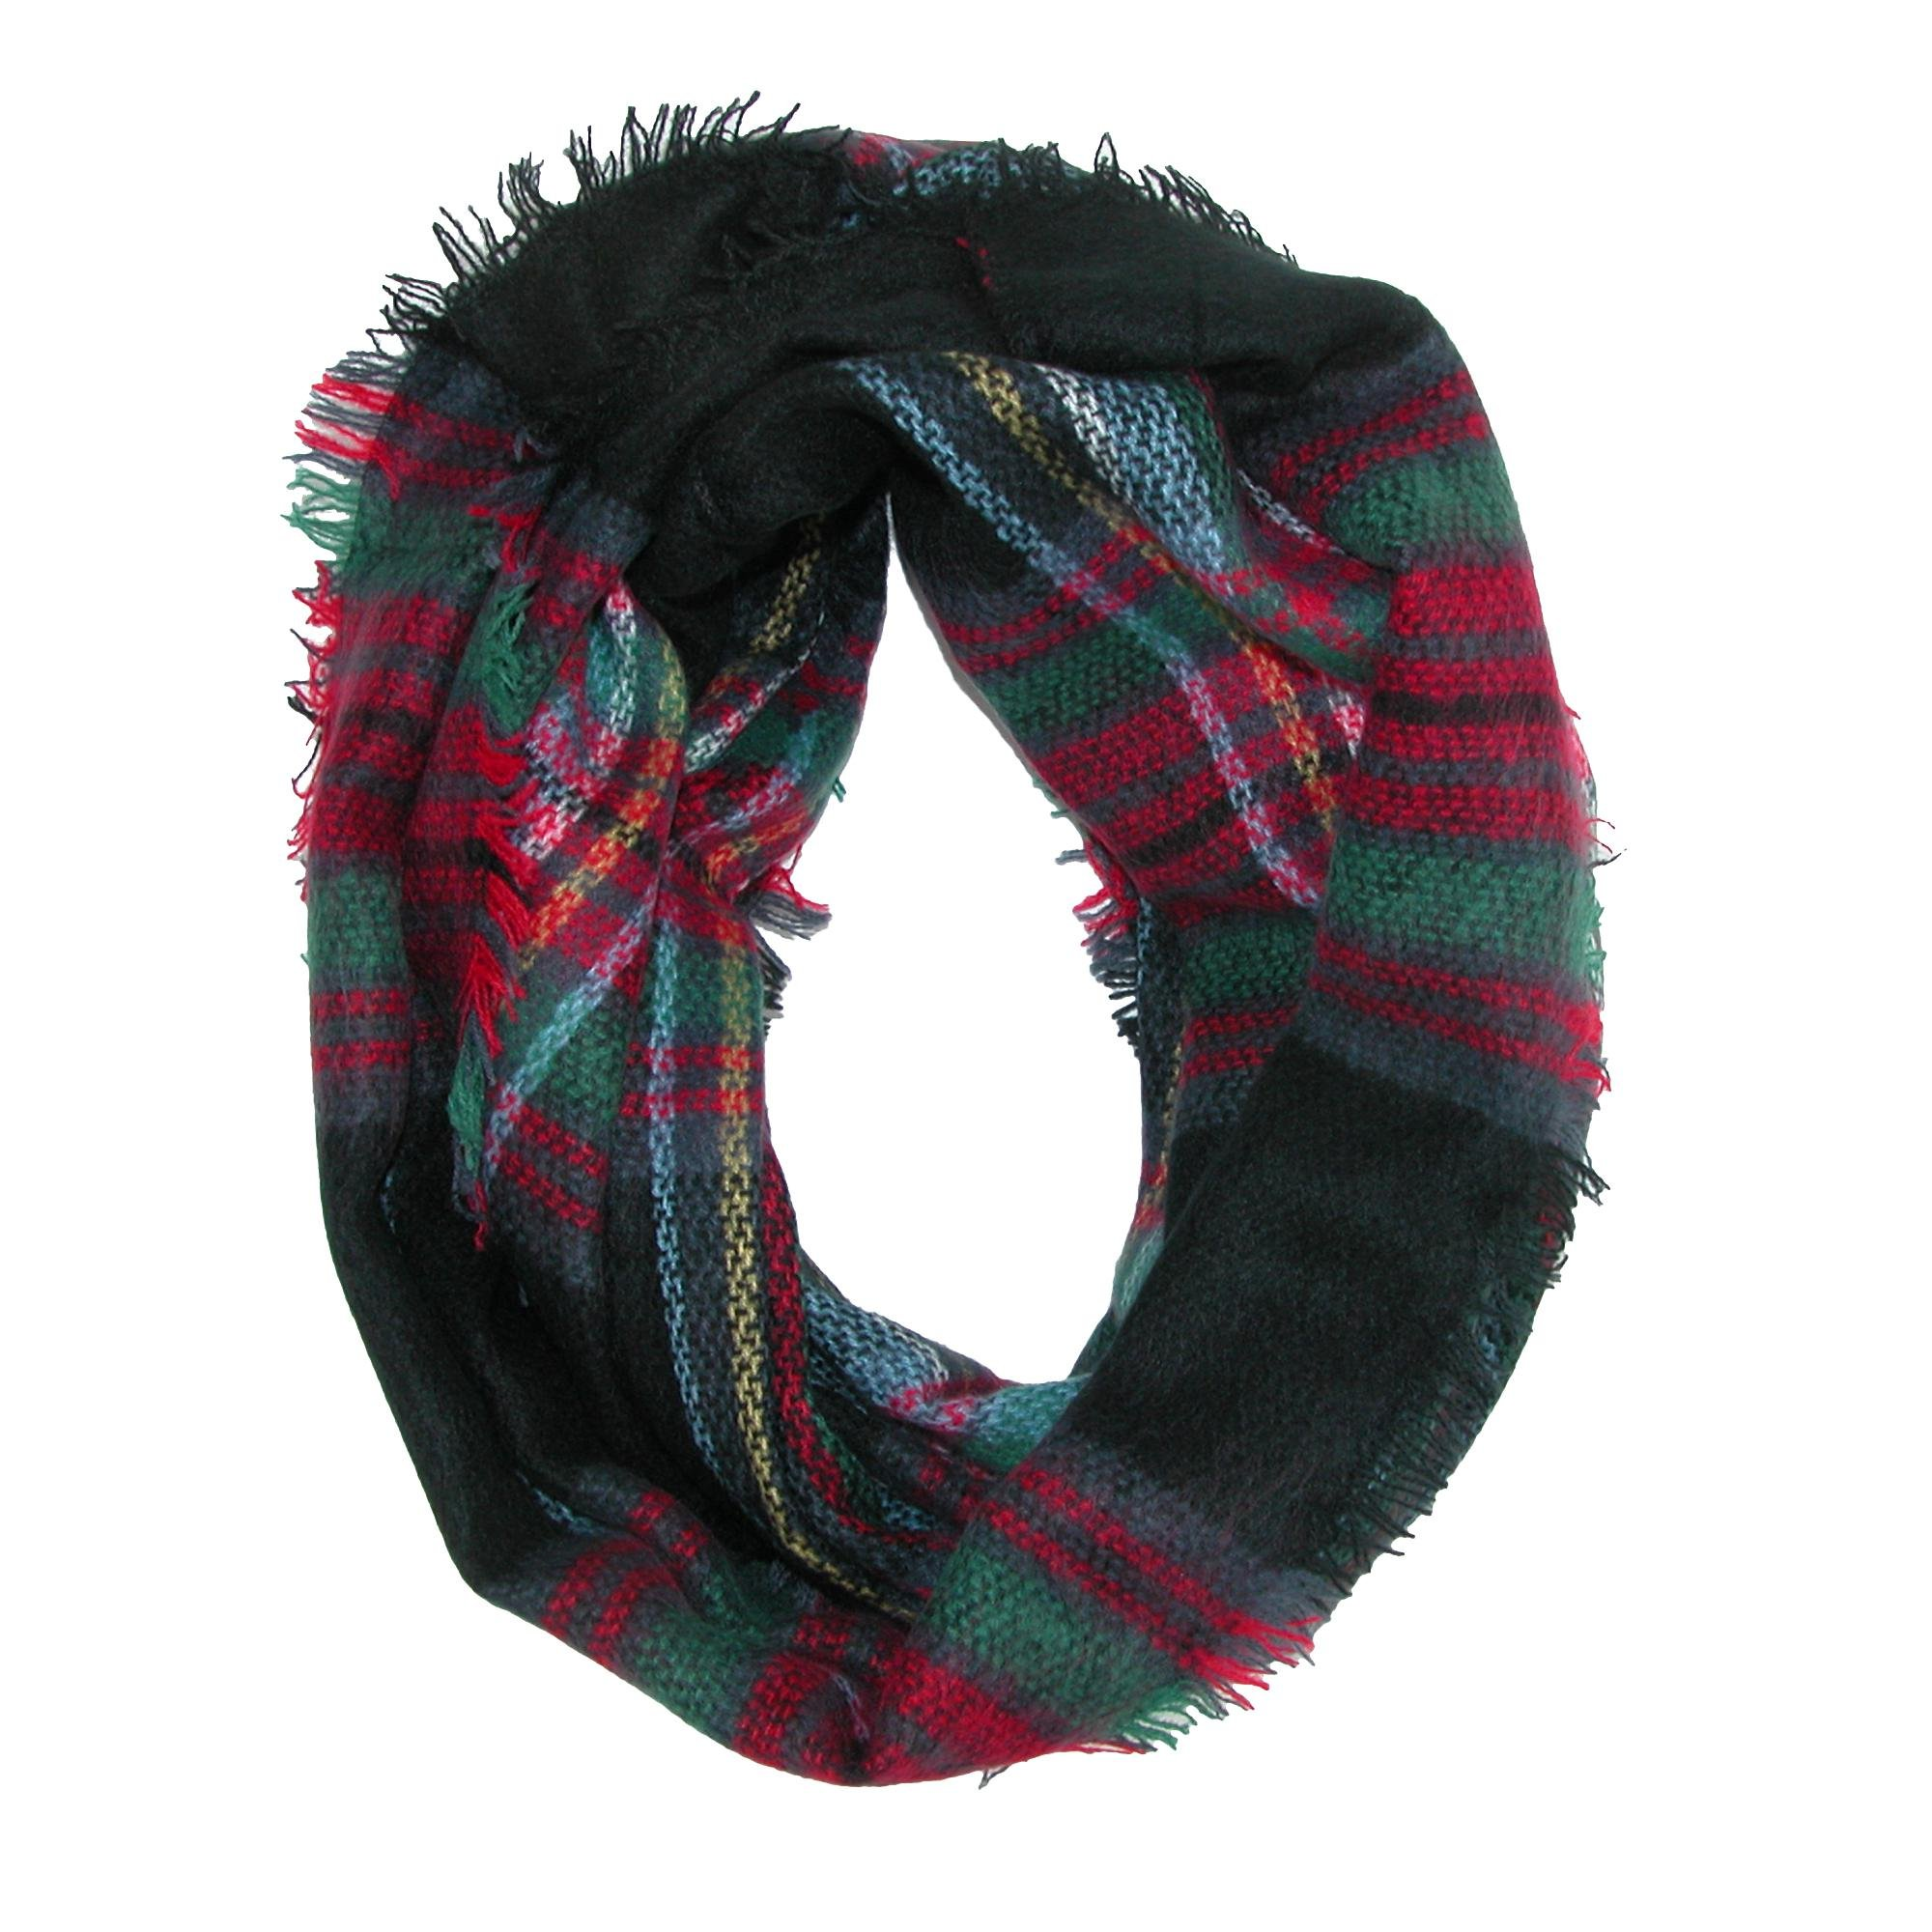 CTM Women's Classic Plaid Check Pattern Infinity Loop Scarf, Black